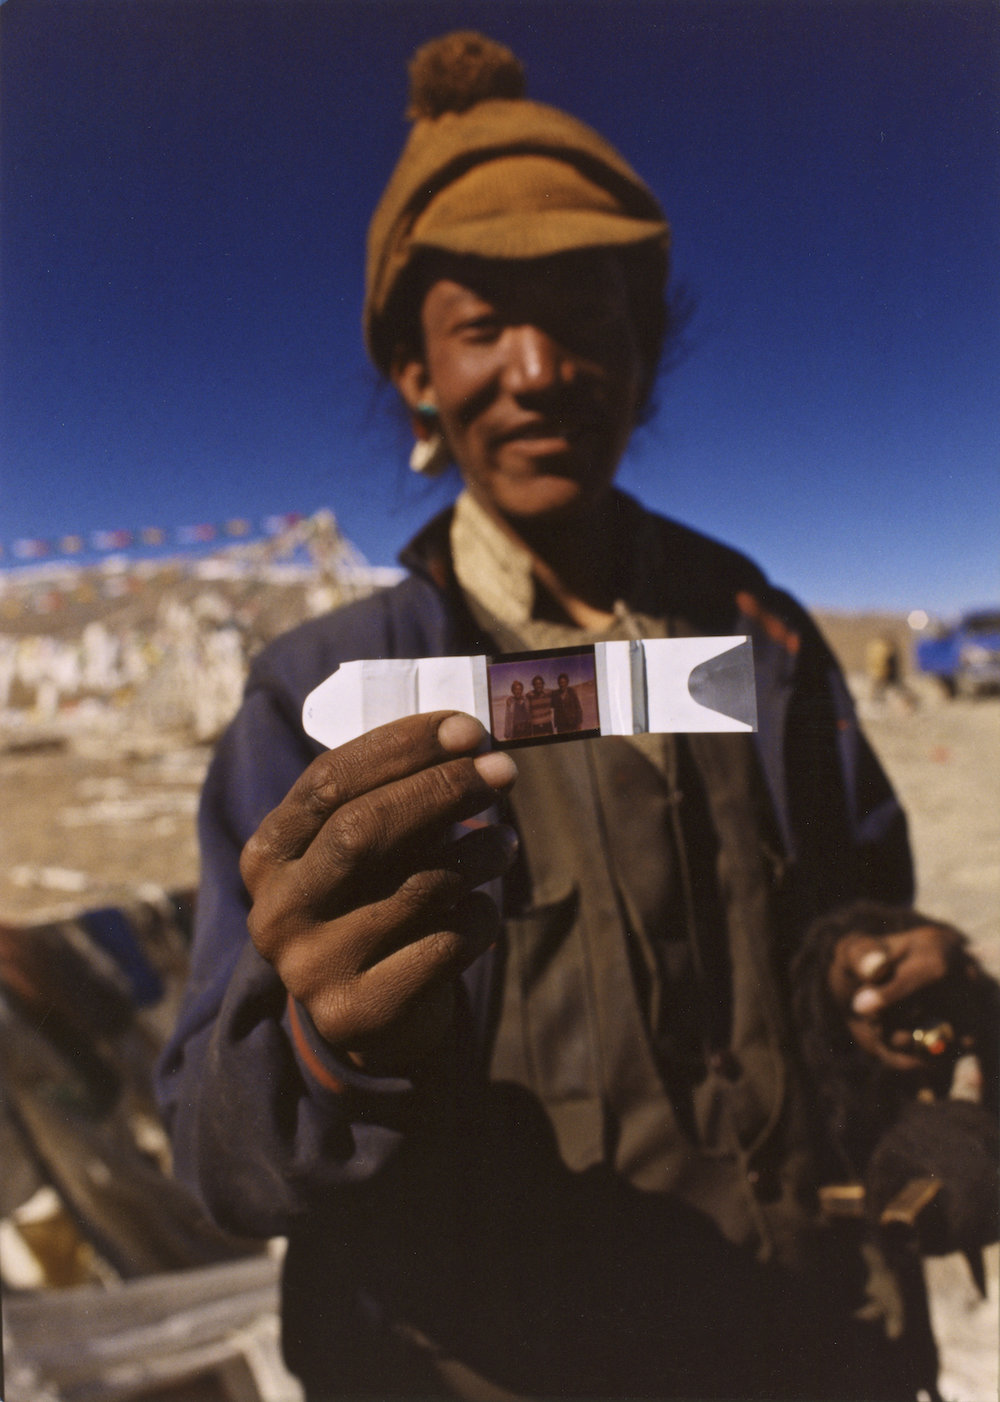 A Tibetan yak herder sees a photograph of himself for the first time. Image by New Orleans based travel photographer, Marc Pagani - marcpagani.com